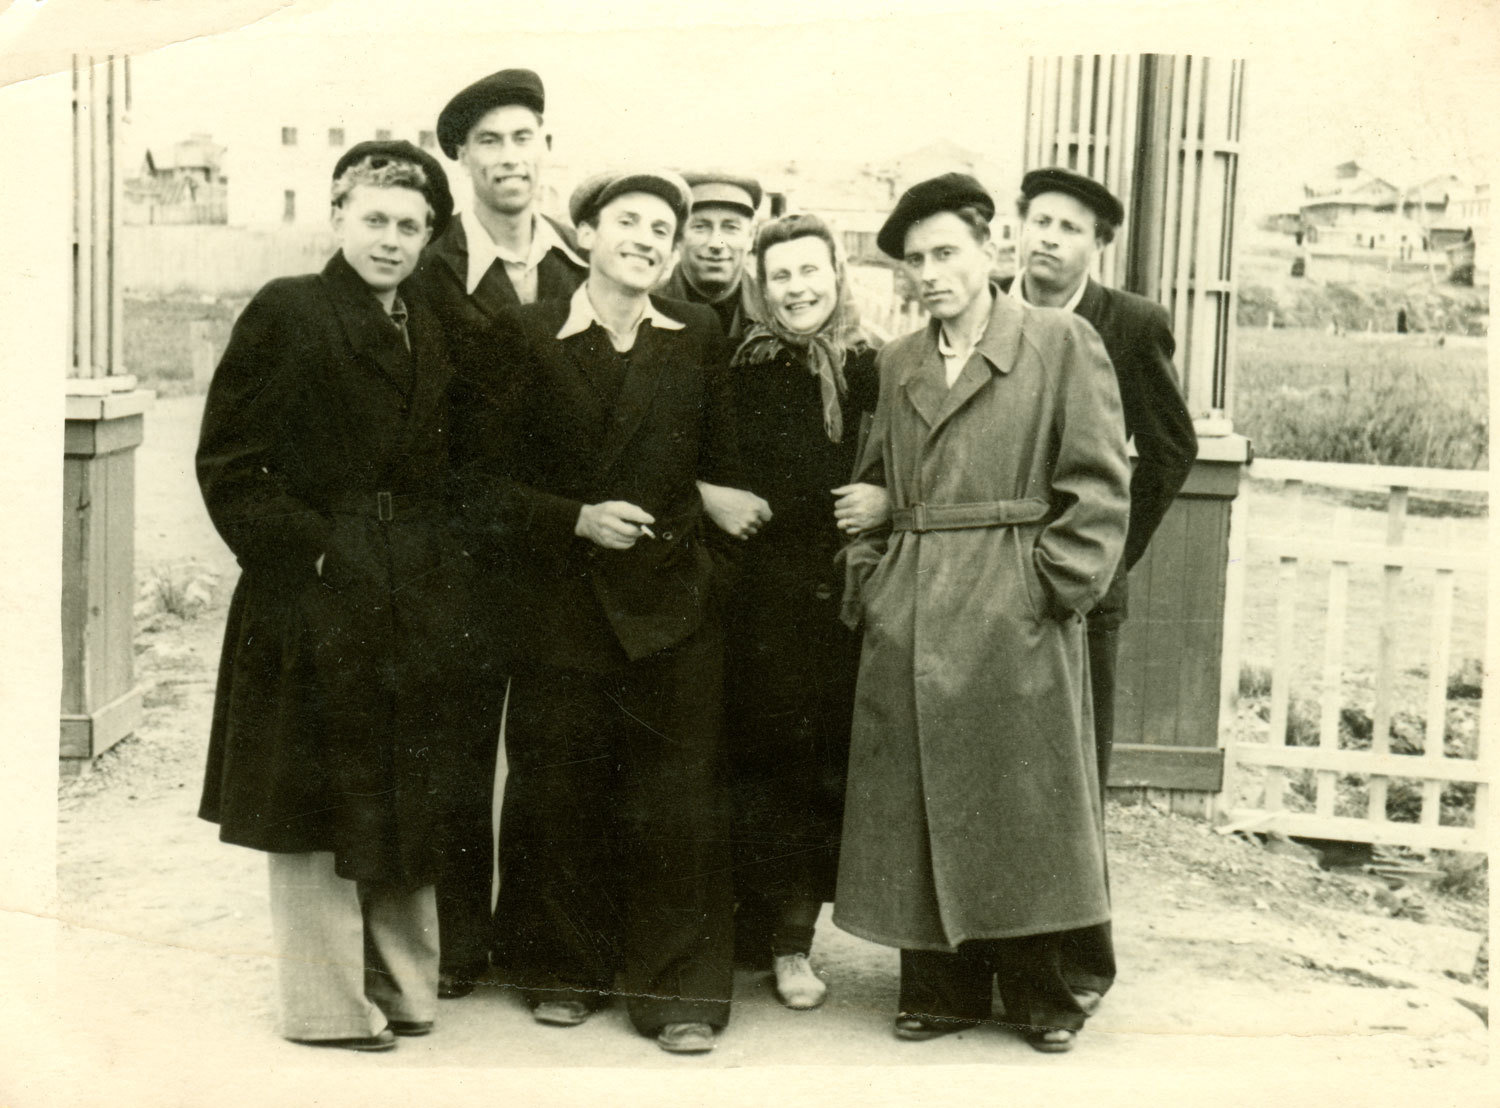 Lithuanian political prisoners in Inta, c. 1956, unknown, Kaunas 9th Fort Museum, CC BY